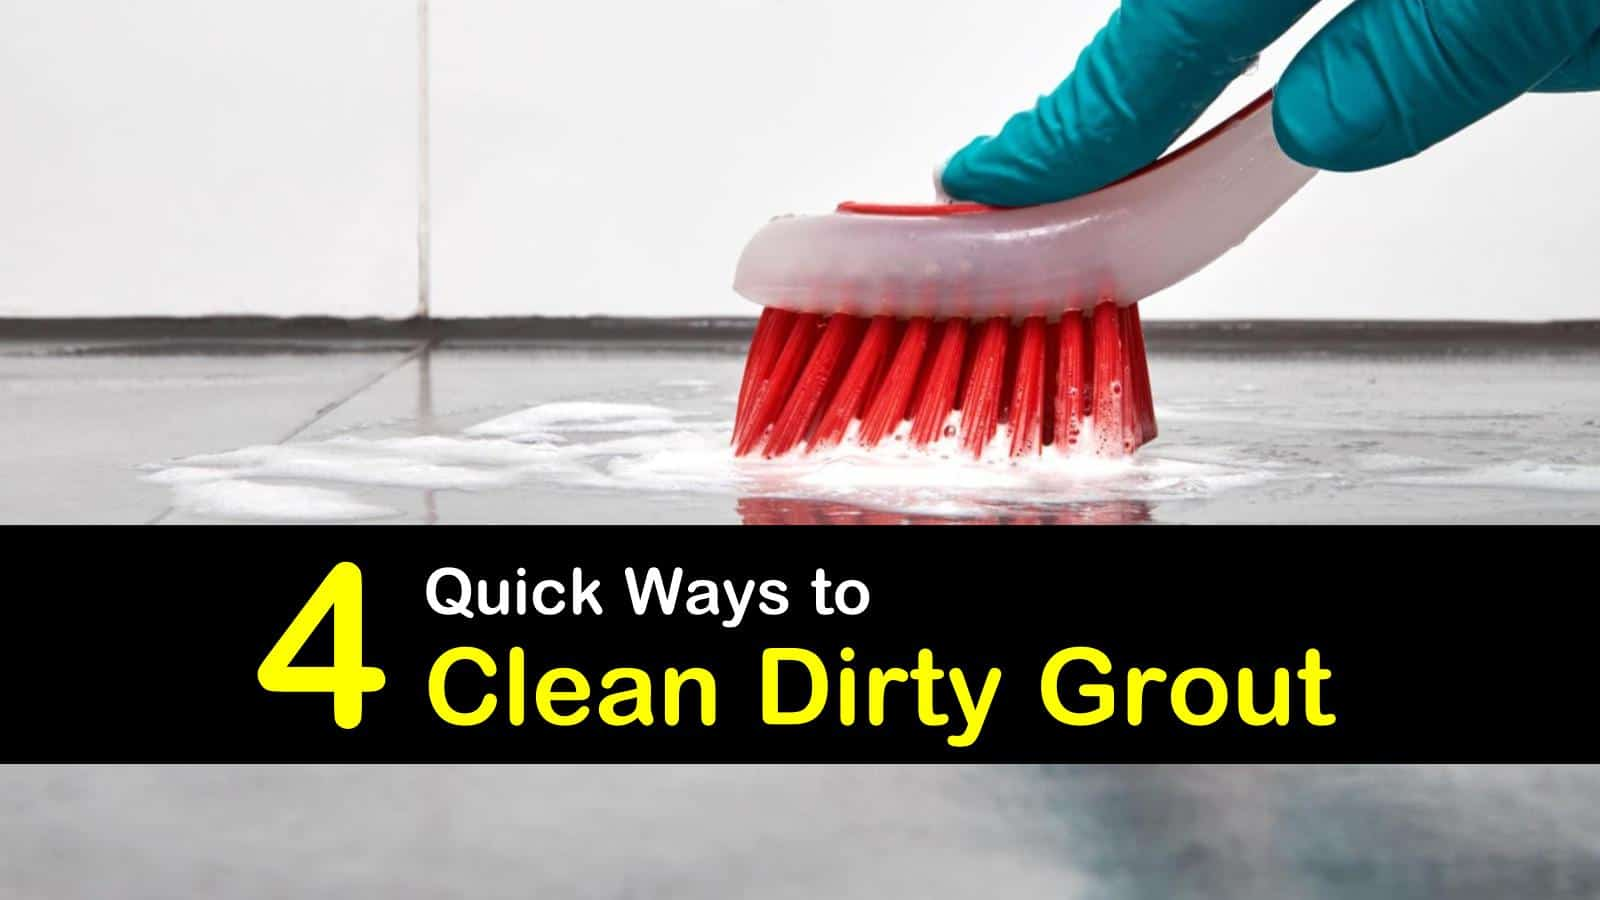 how to clean dirty grout titleimg1